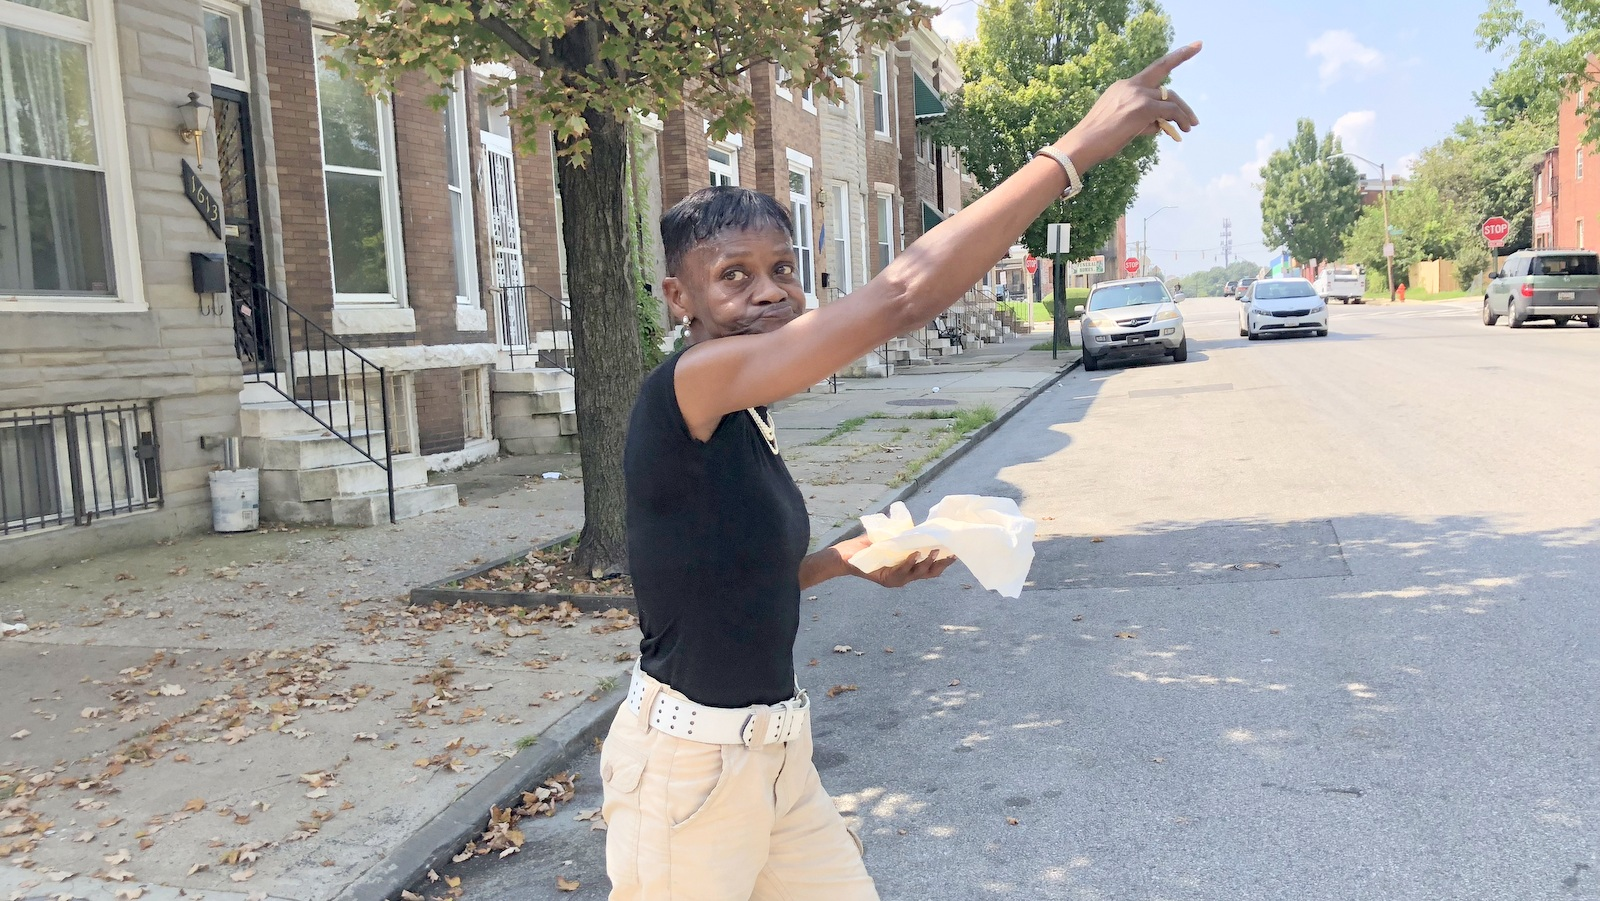 Neighborhood kids need relief from the heat, said Tonya Smith, pointing to the padlocked William McAbee pool on Gimore Street in West Baltimore. (Fern Shen)